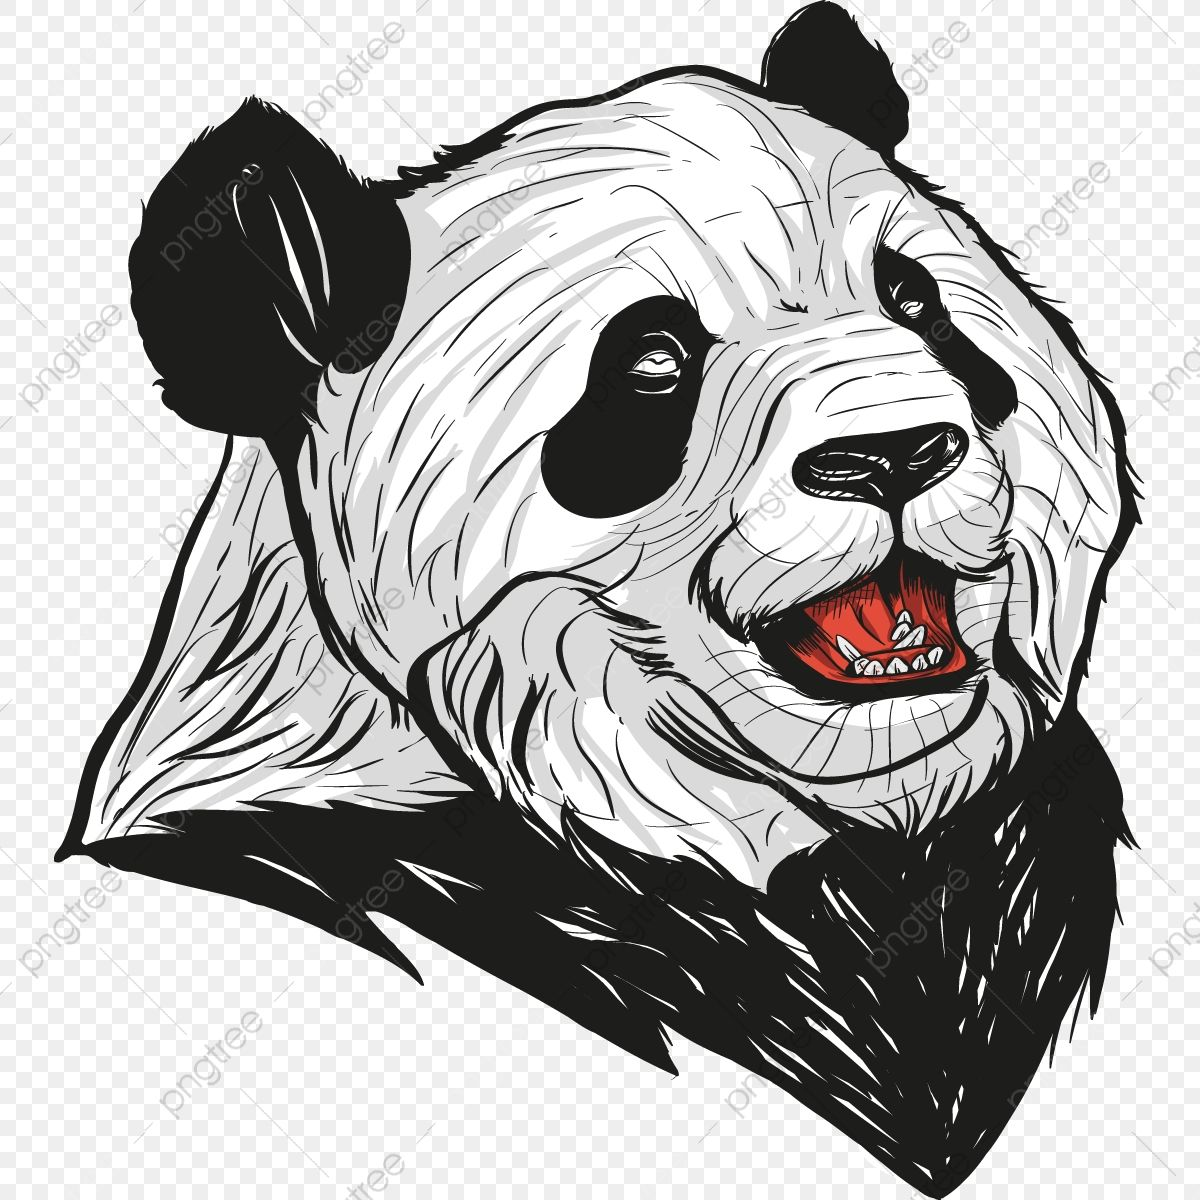 Panda Head Lineart Sketch Clipart Panda Infographics Elements Png And Vector With Transparent Background For Free Download Panda Head Panda Artwork Cartoon Sketch Drawing